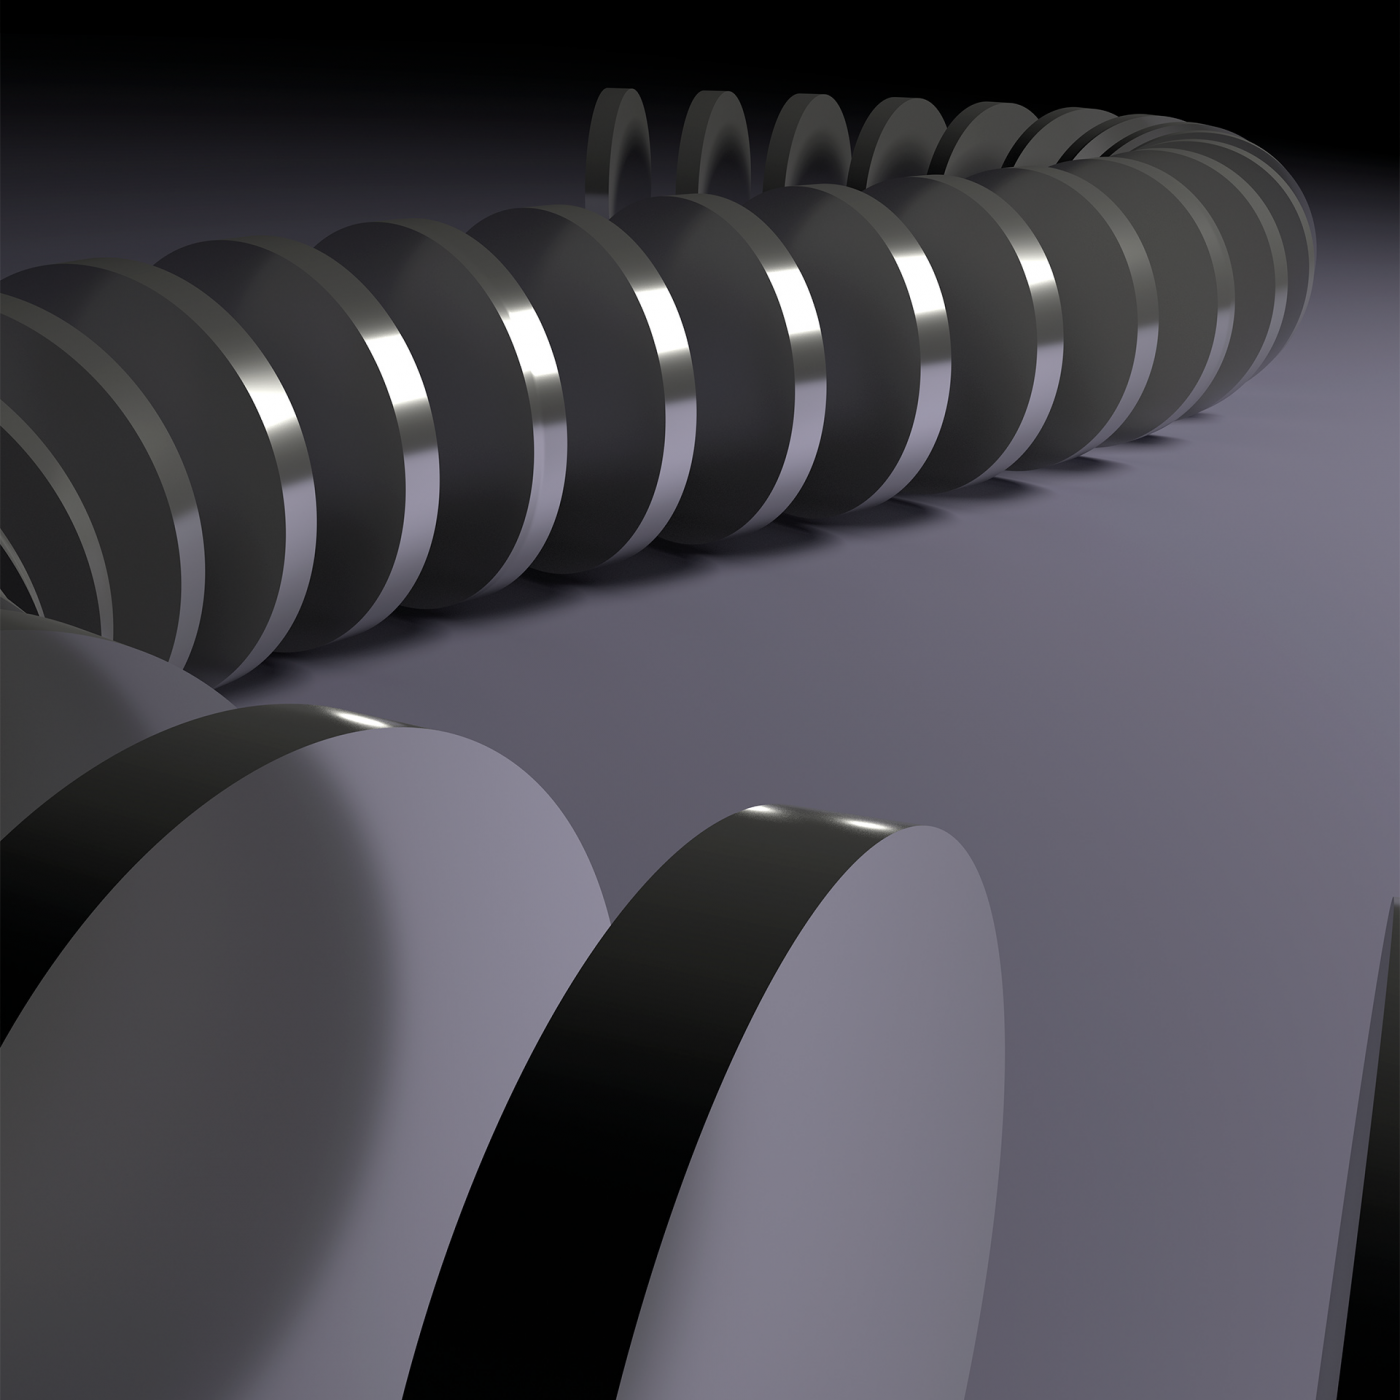 Diagnosis of the curved spine render